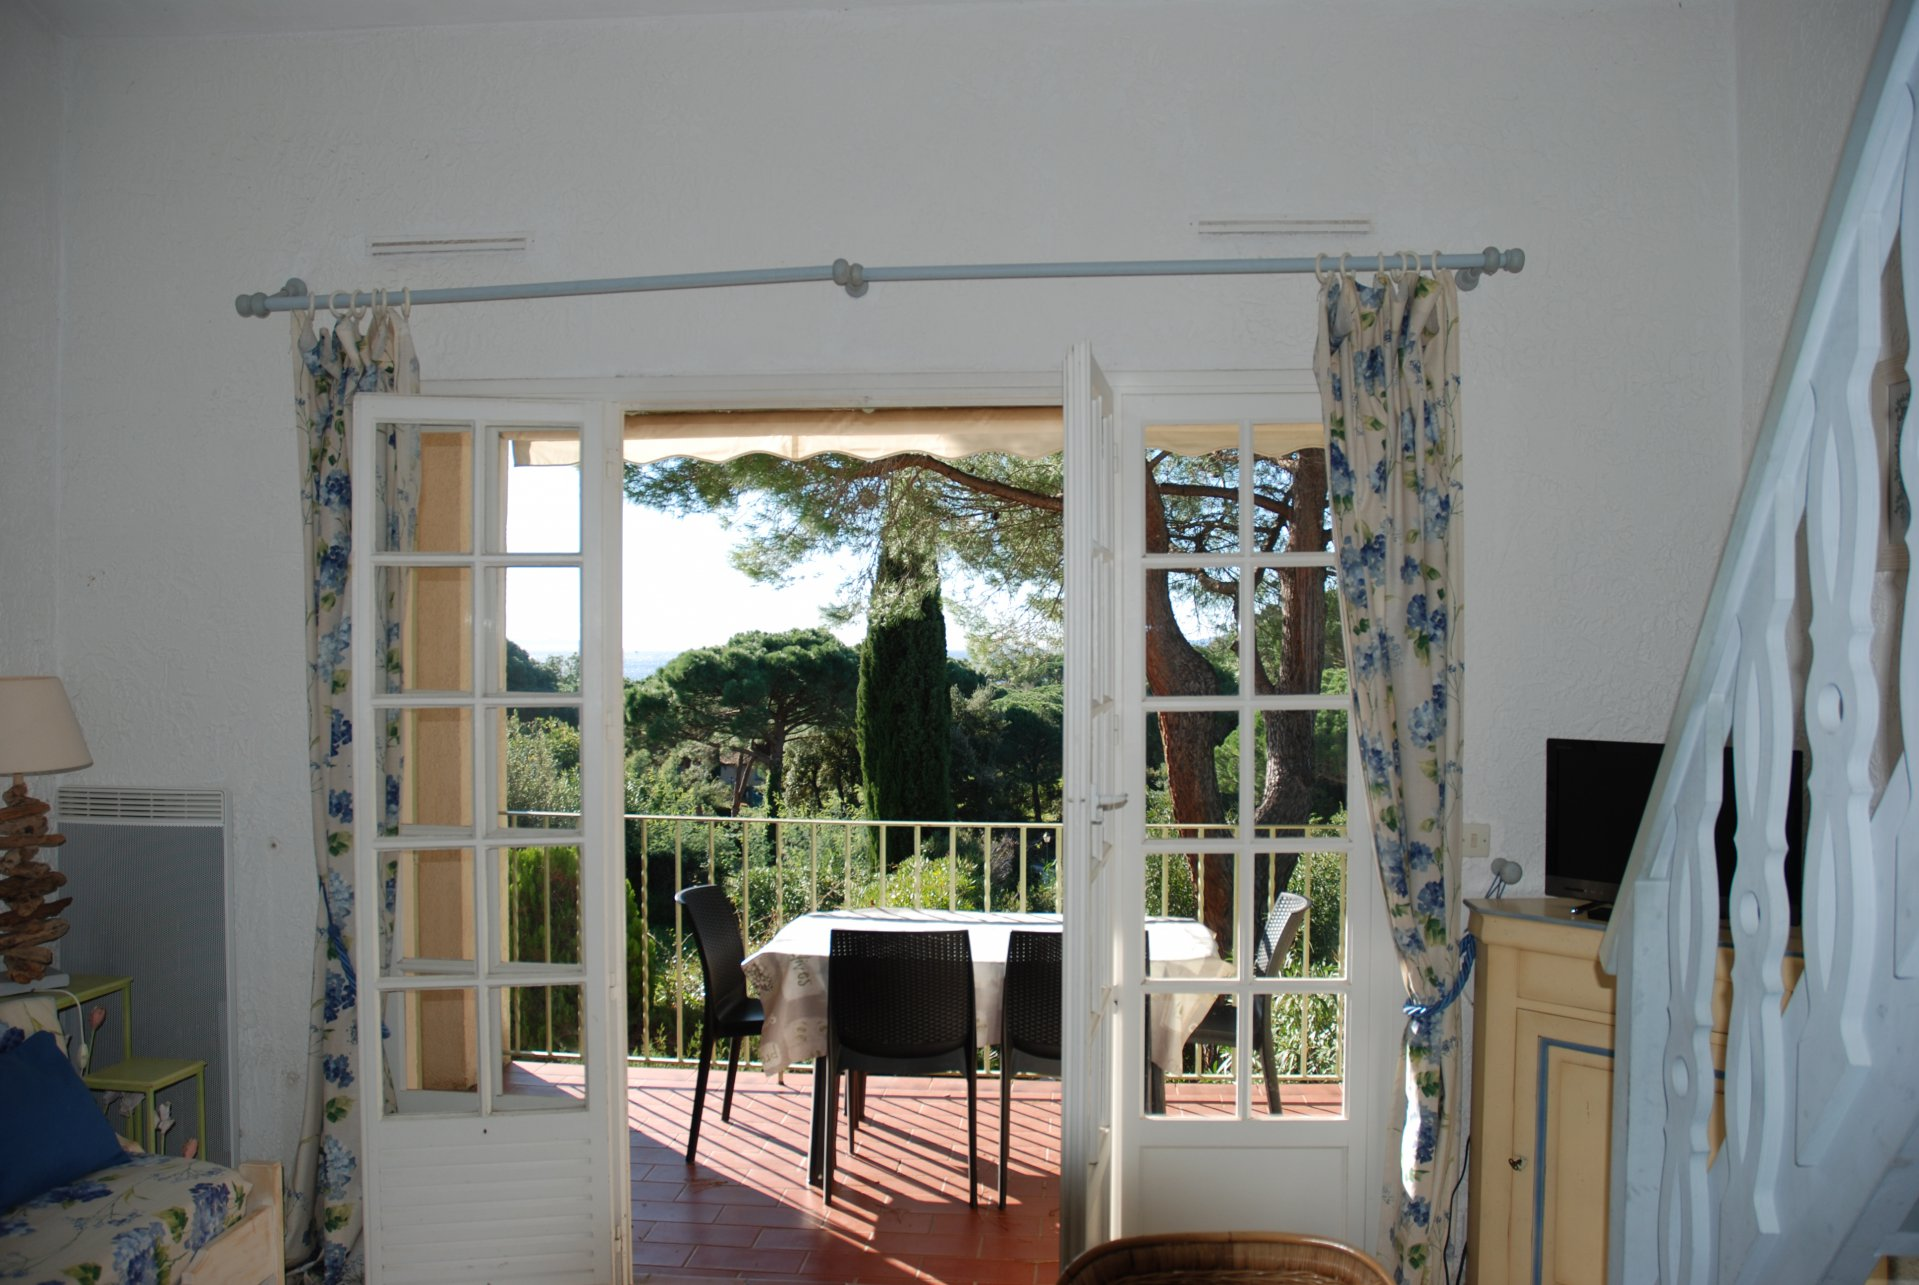 GIGARO - Flat + mezzanine, sea view